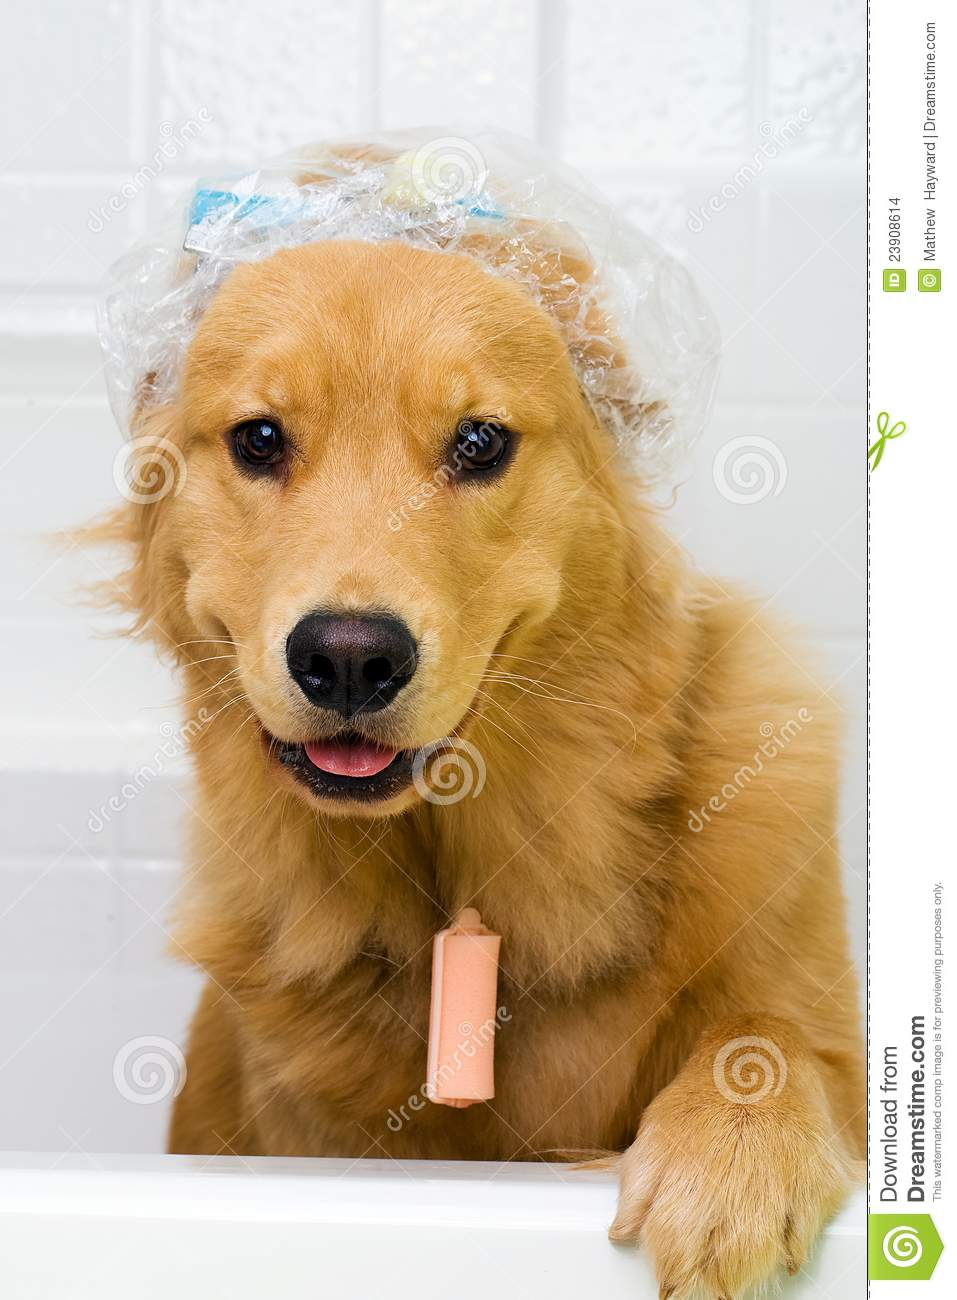 Funny Dog With Hair Curlers And A Shower Cap Stock Images